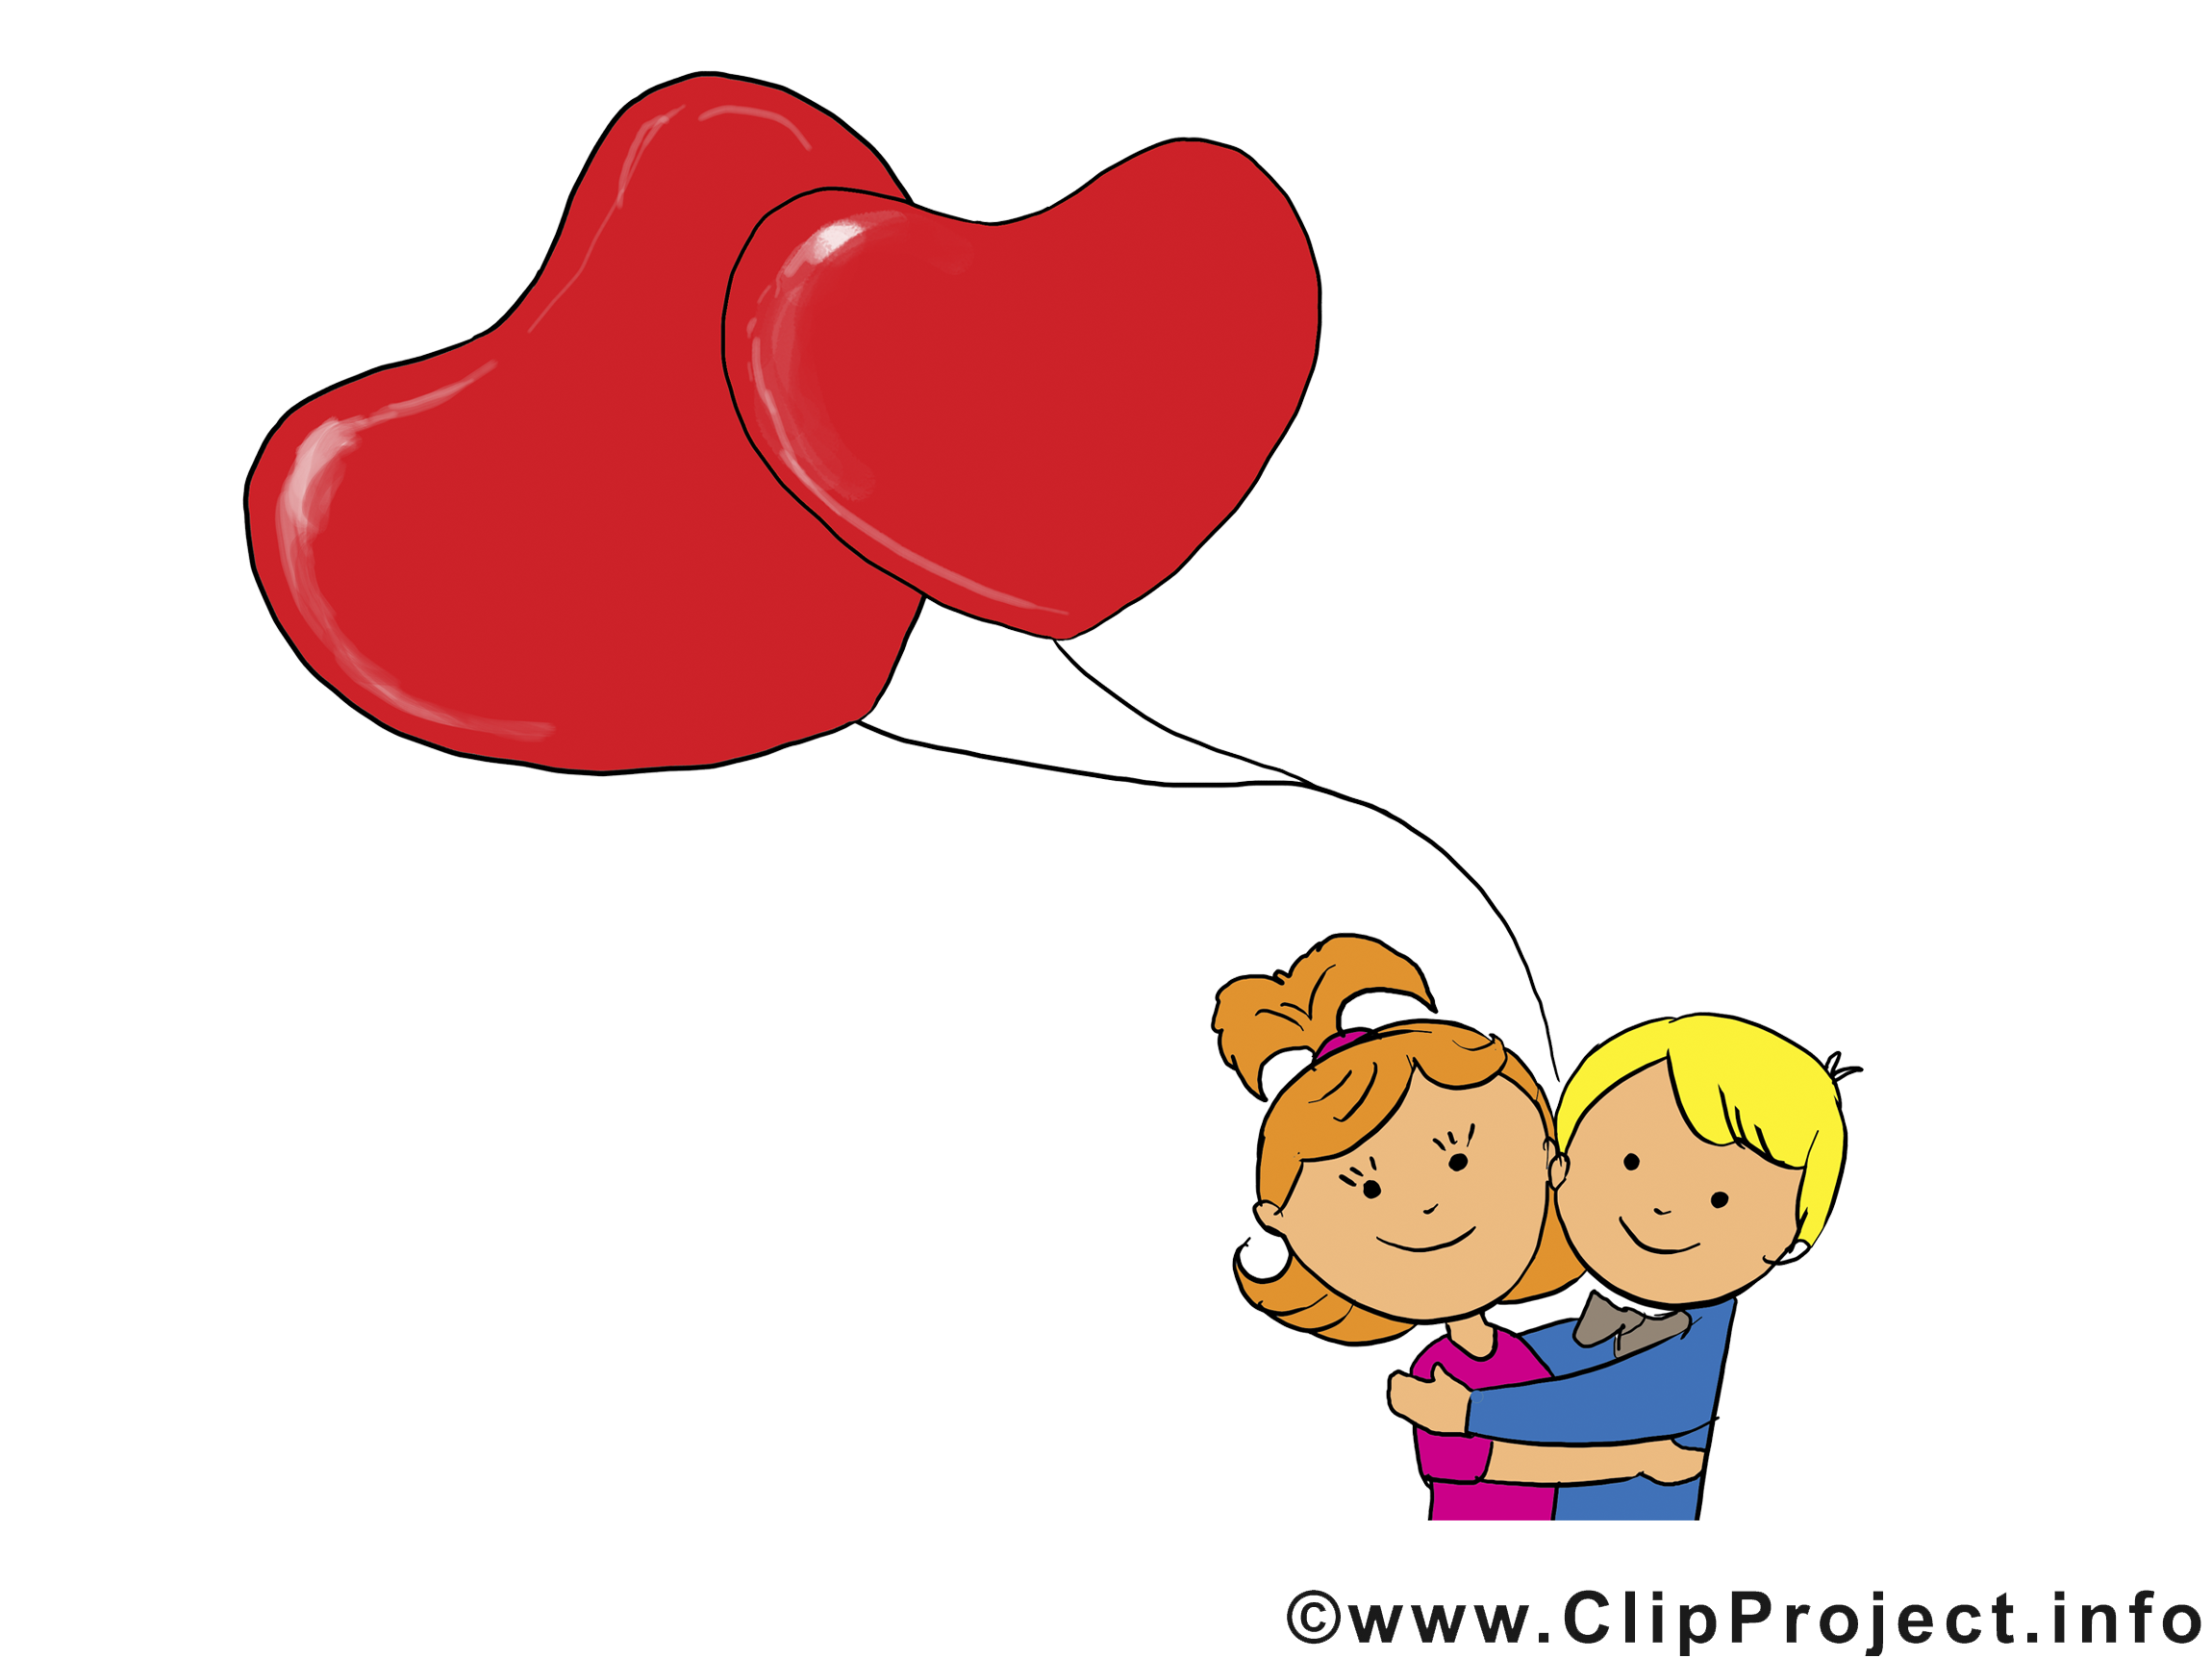 Erste liebe clipart image free download Clipart liebe ist - ClipartFest image free download